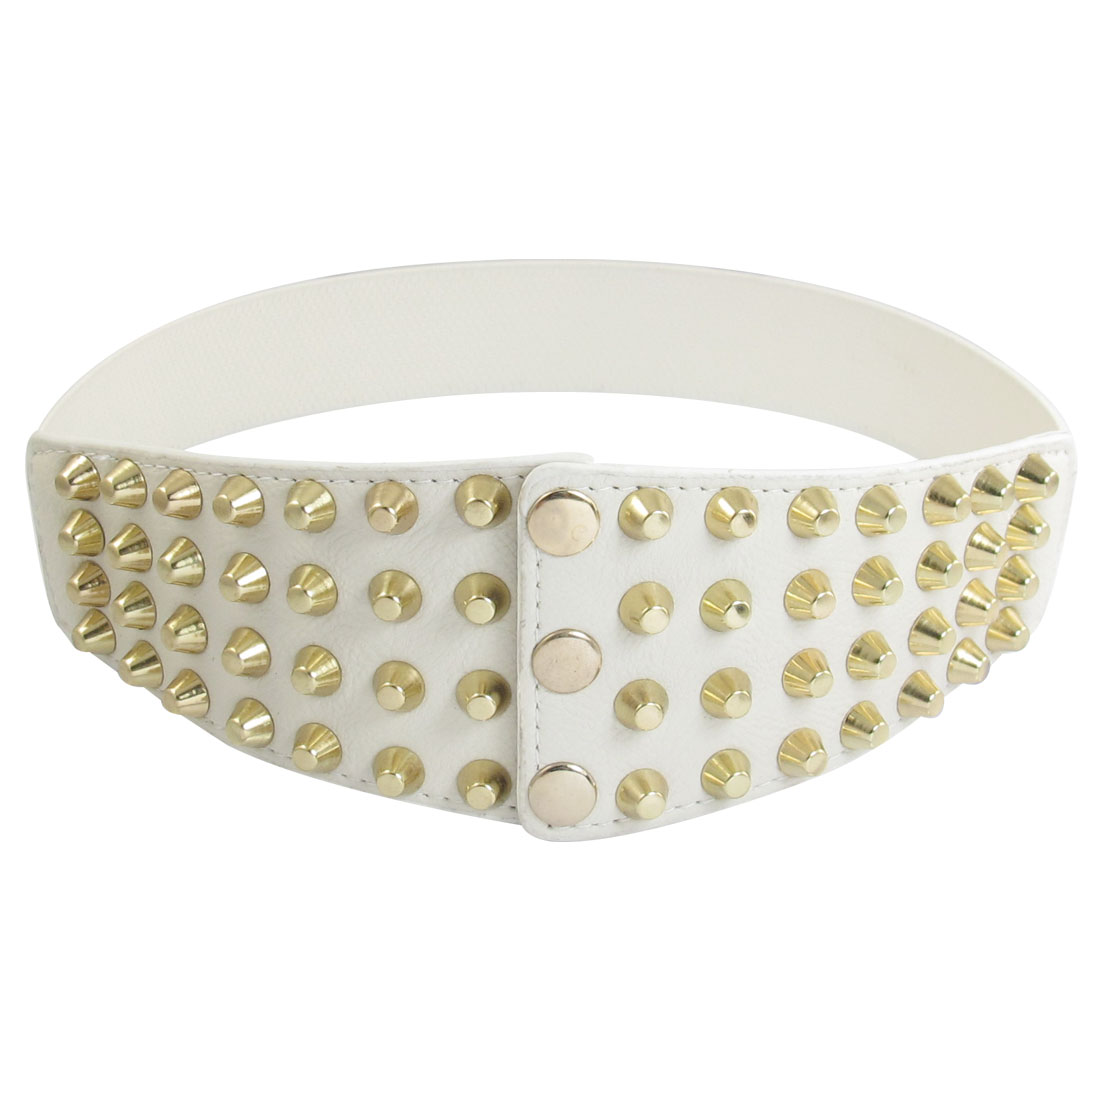 White Faux Leather Decor Press Buckle Stretchy Waistband for Ladies